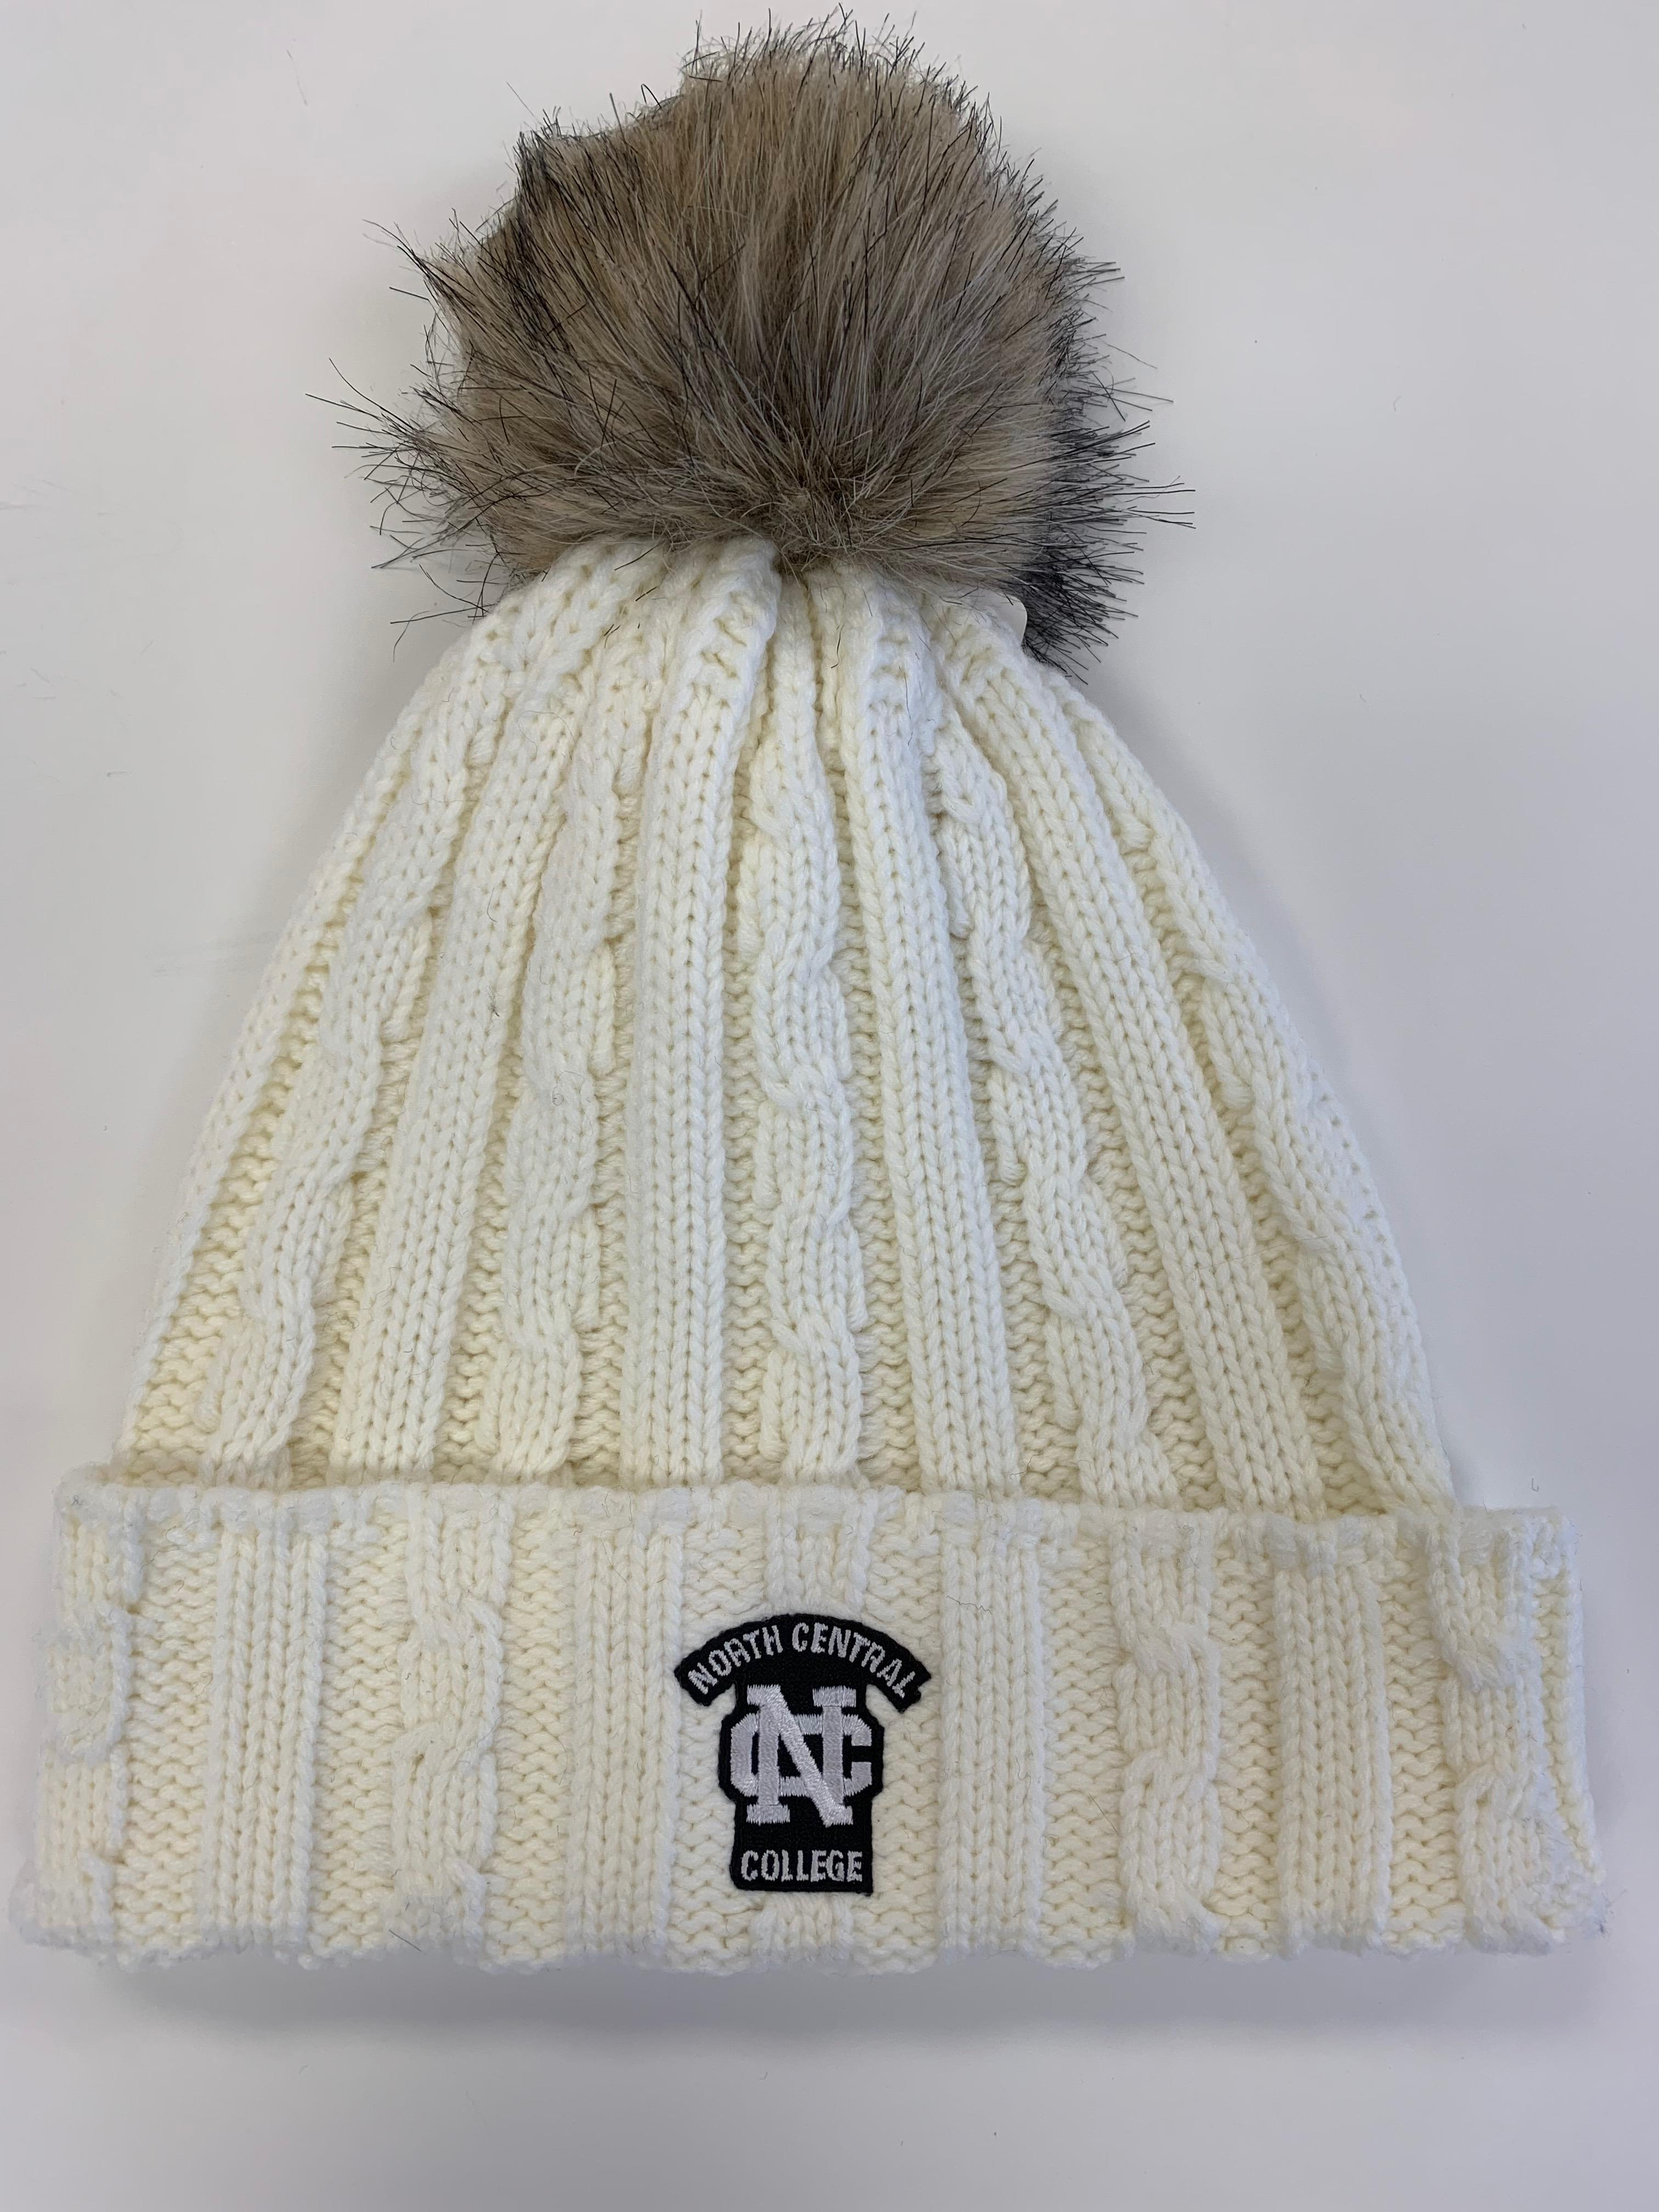 Image for the Alps Knit Cuff Hat w/Faux Fur Pom product